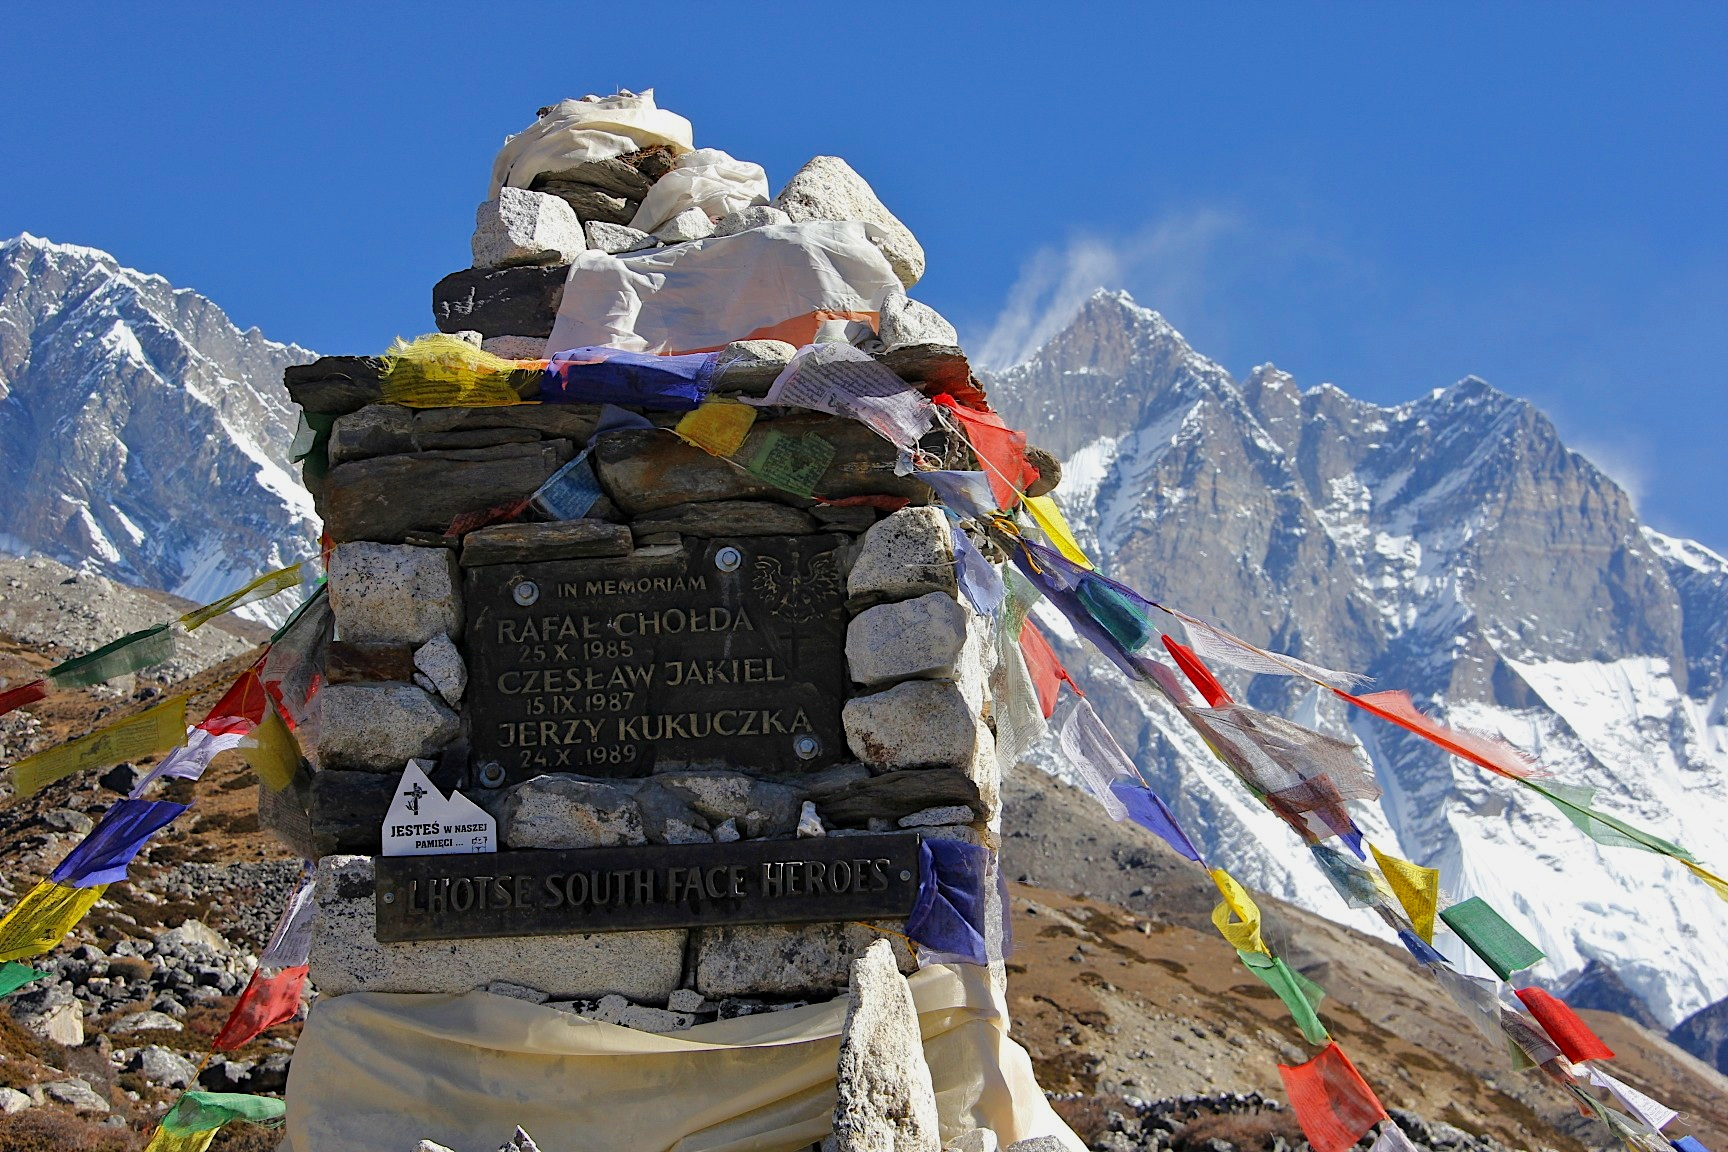 The memorial to the Polish climbers who died on Lhotse in the 1980s.